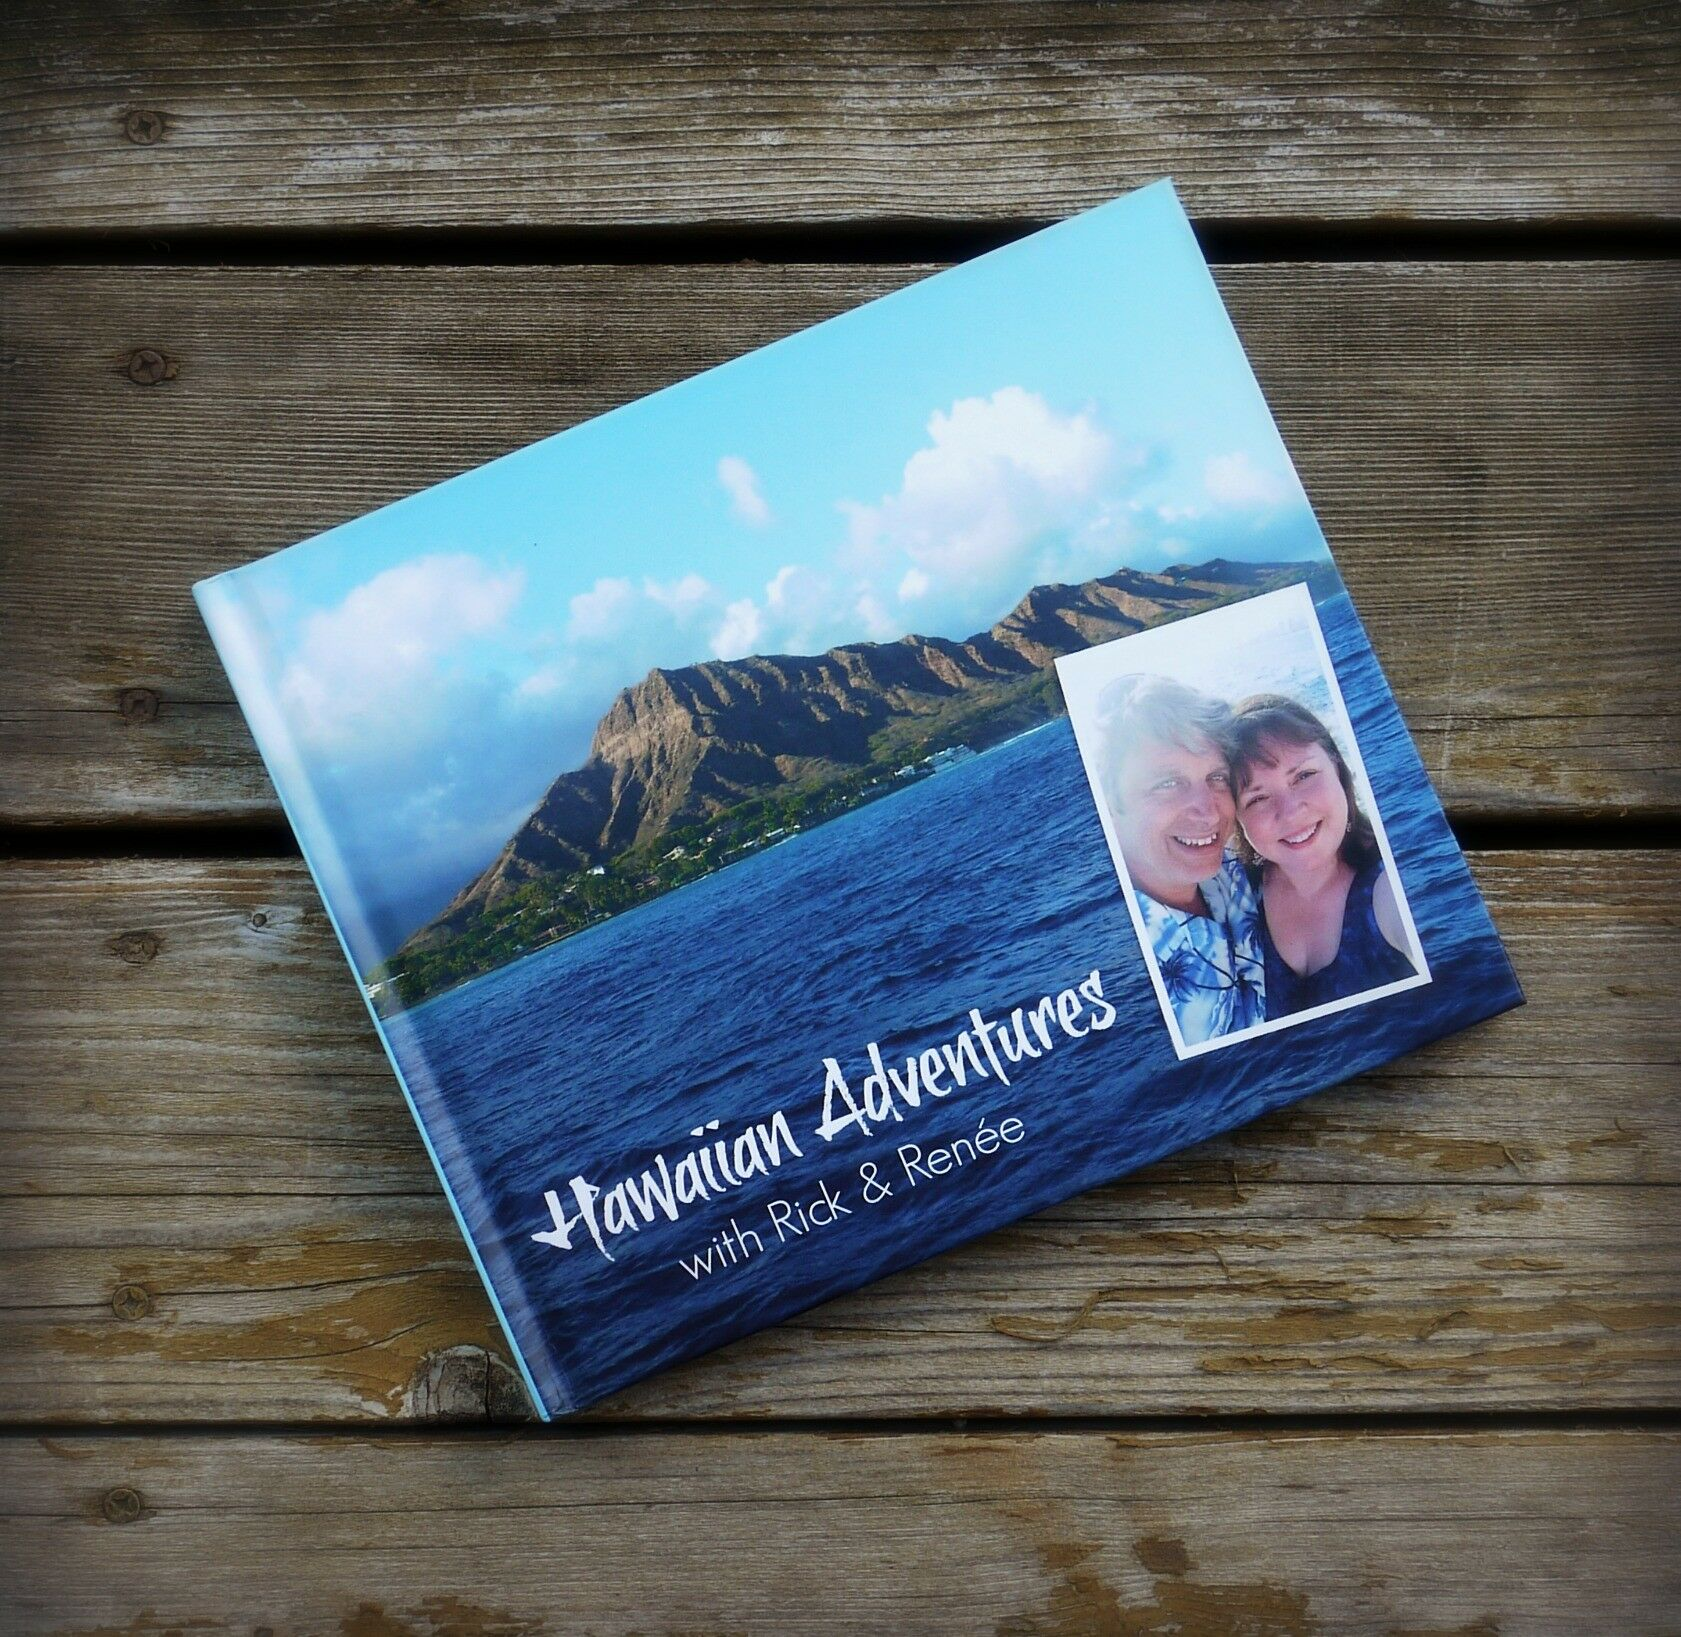 Capturing Adventure - Blurb Photo Book Review | The Good Hearted Woman